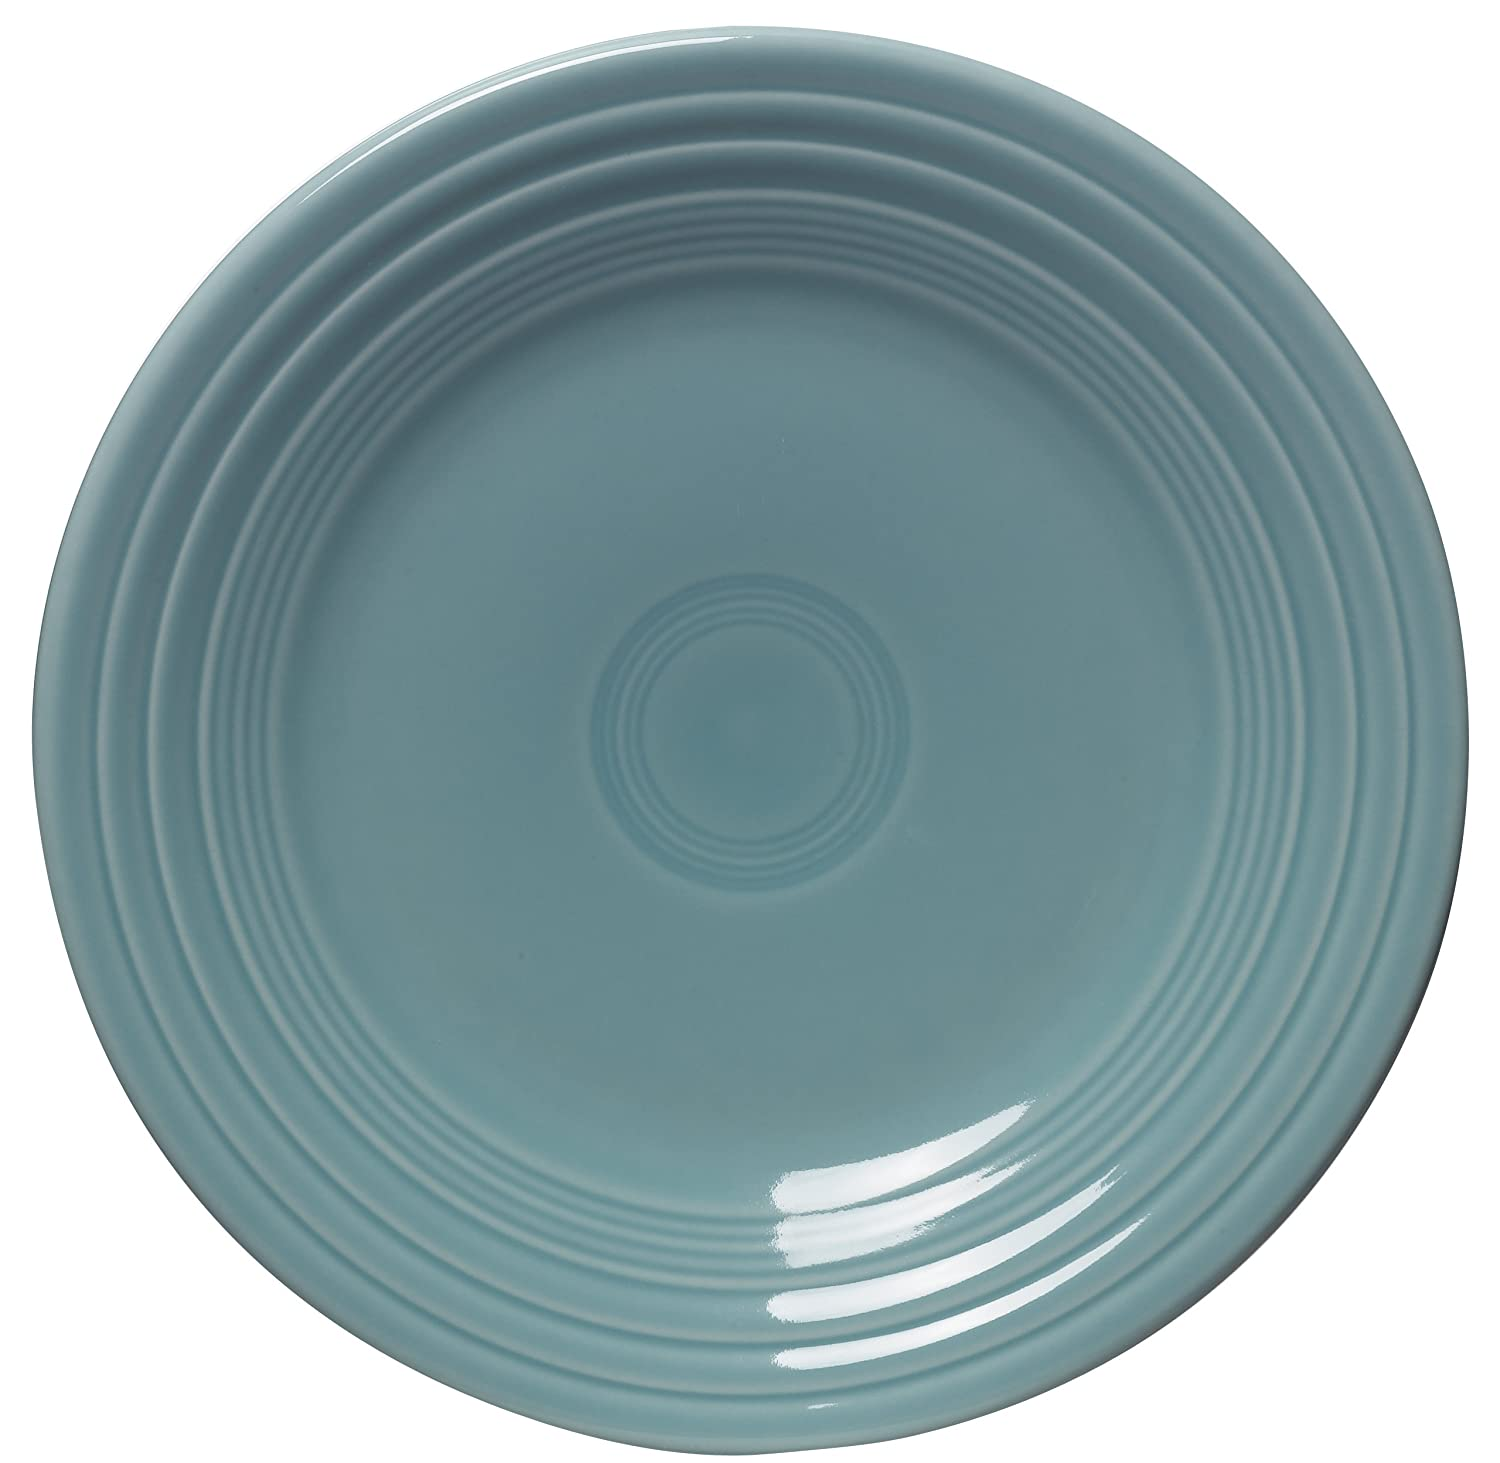 Fiesta 9-Inch Luncheon Plate, Turquoise by Homer Laughlin